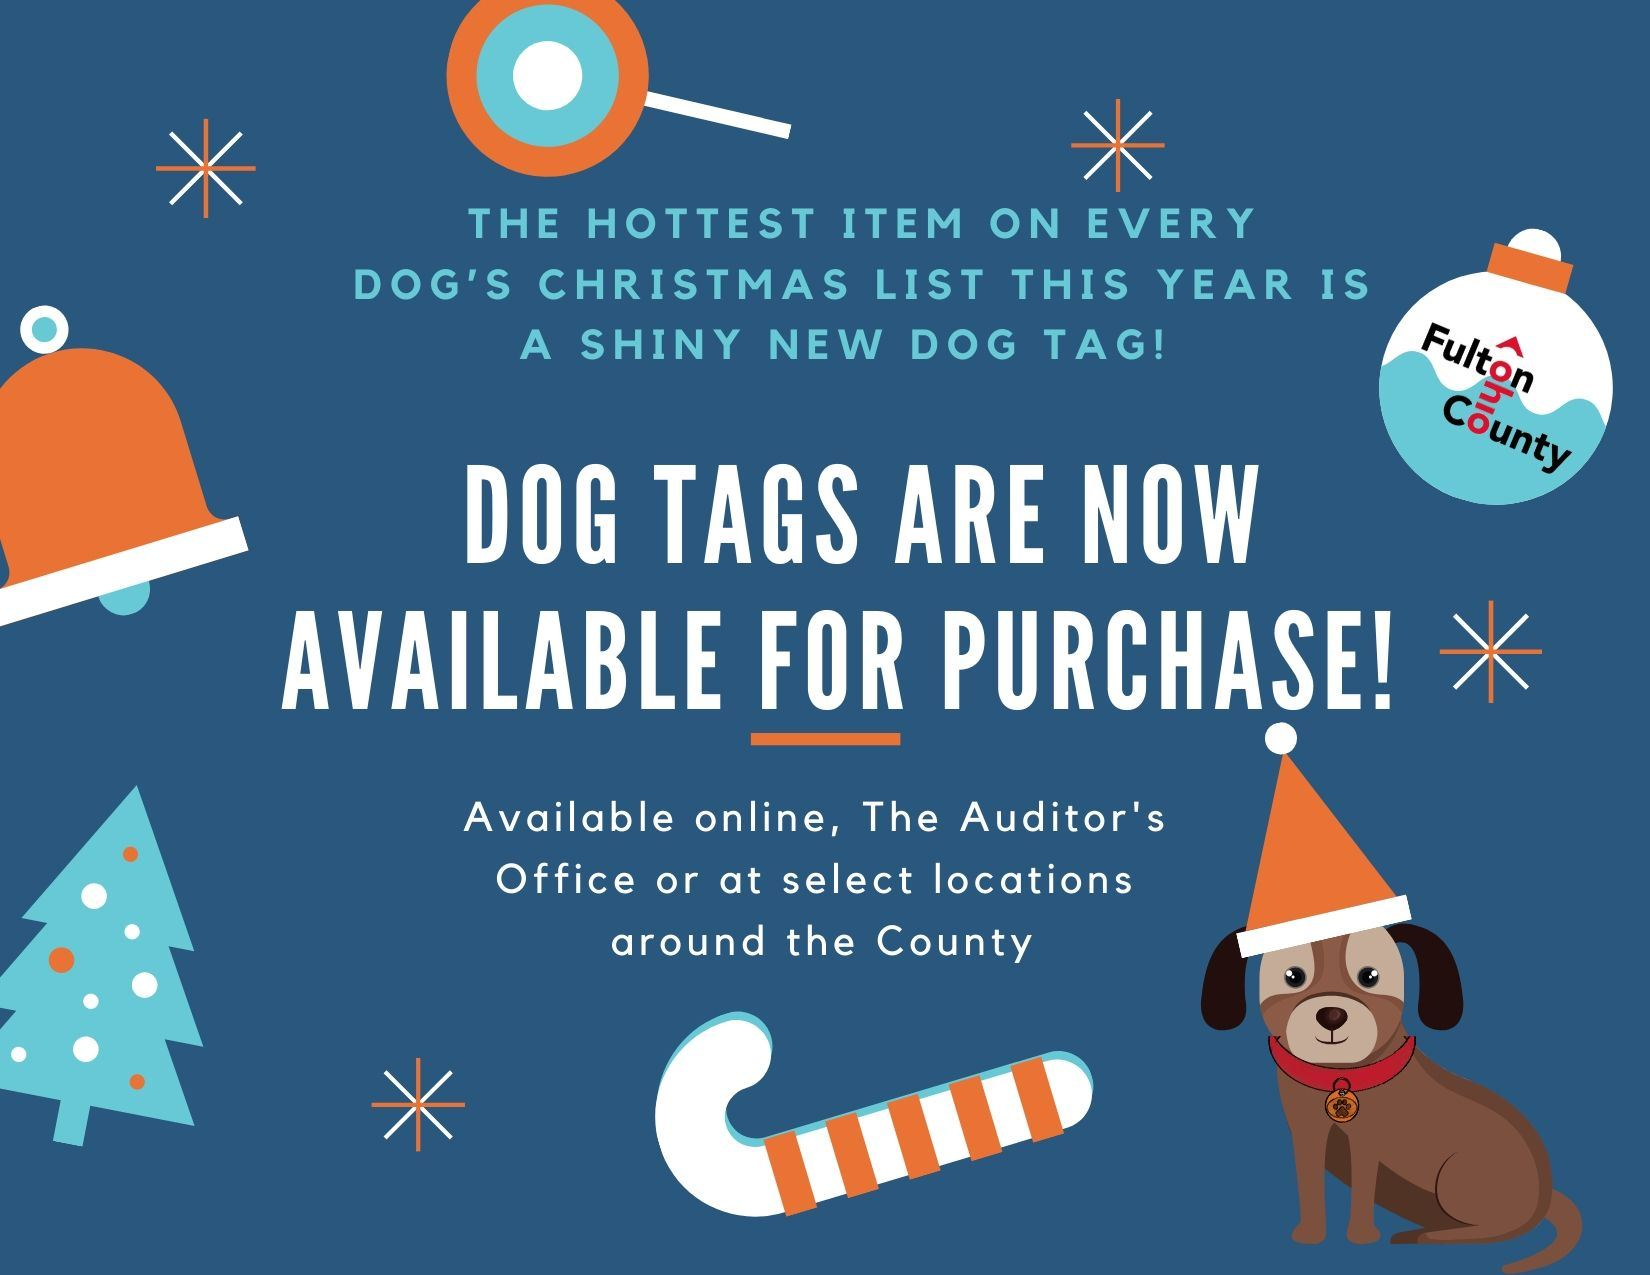 Dog tags are now available for purchase!